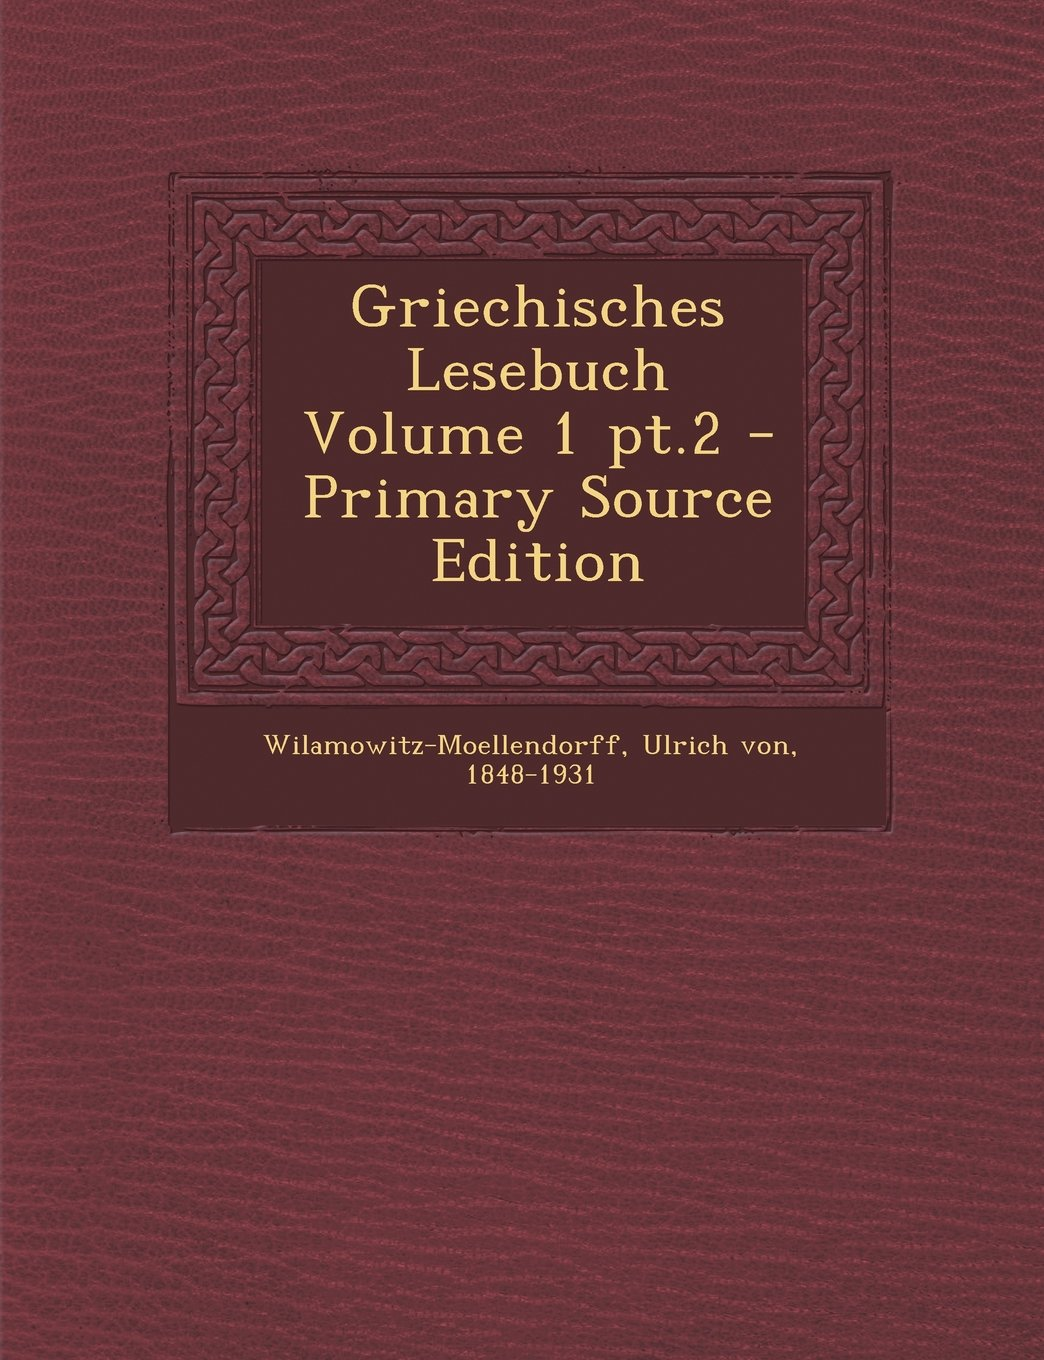 Griechisches Lesebuch Volume 1 PT.2 - Primary Source Edition (Ancient Greek Edition) pdf